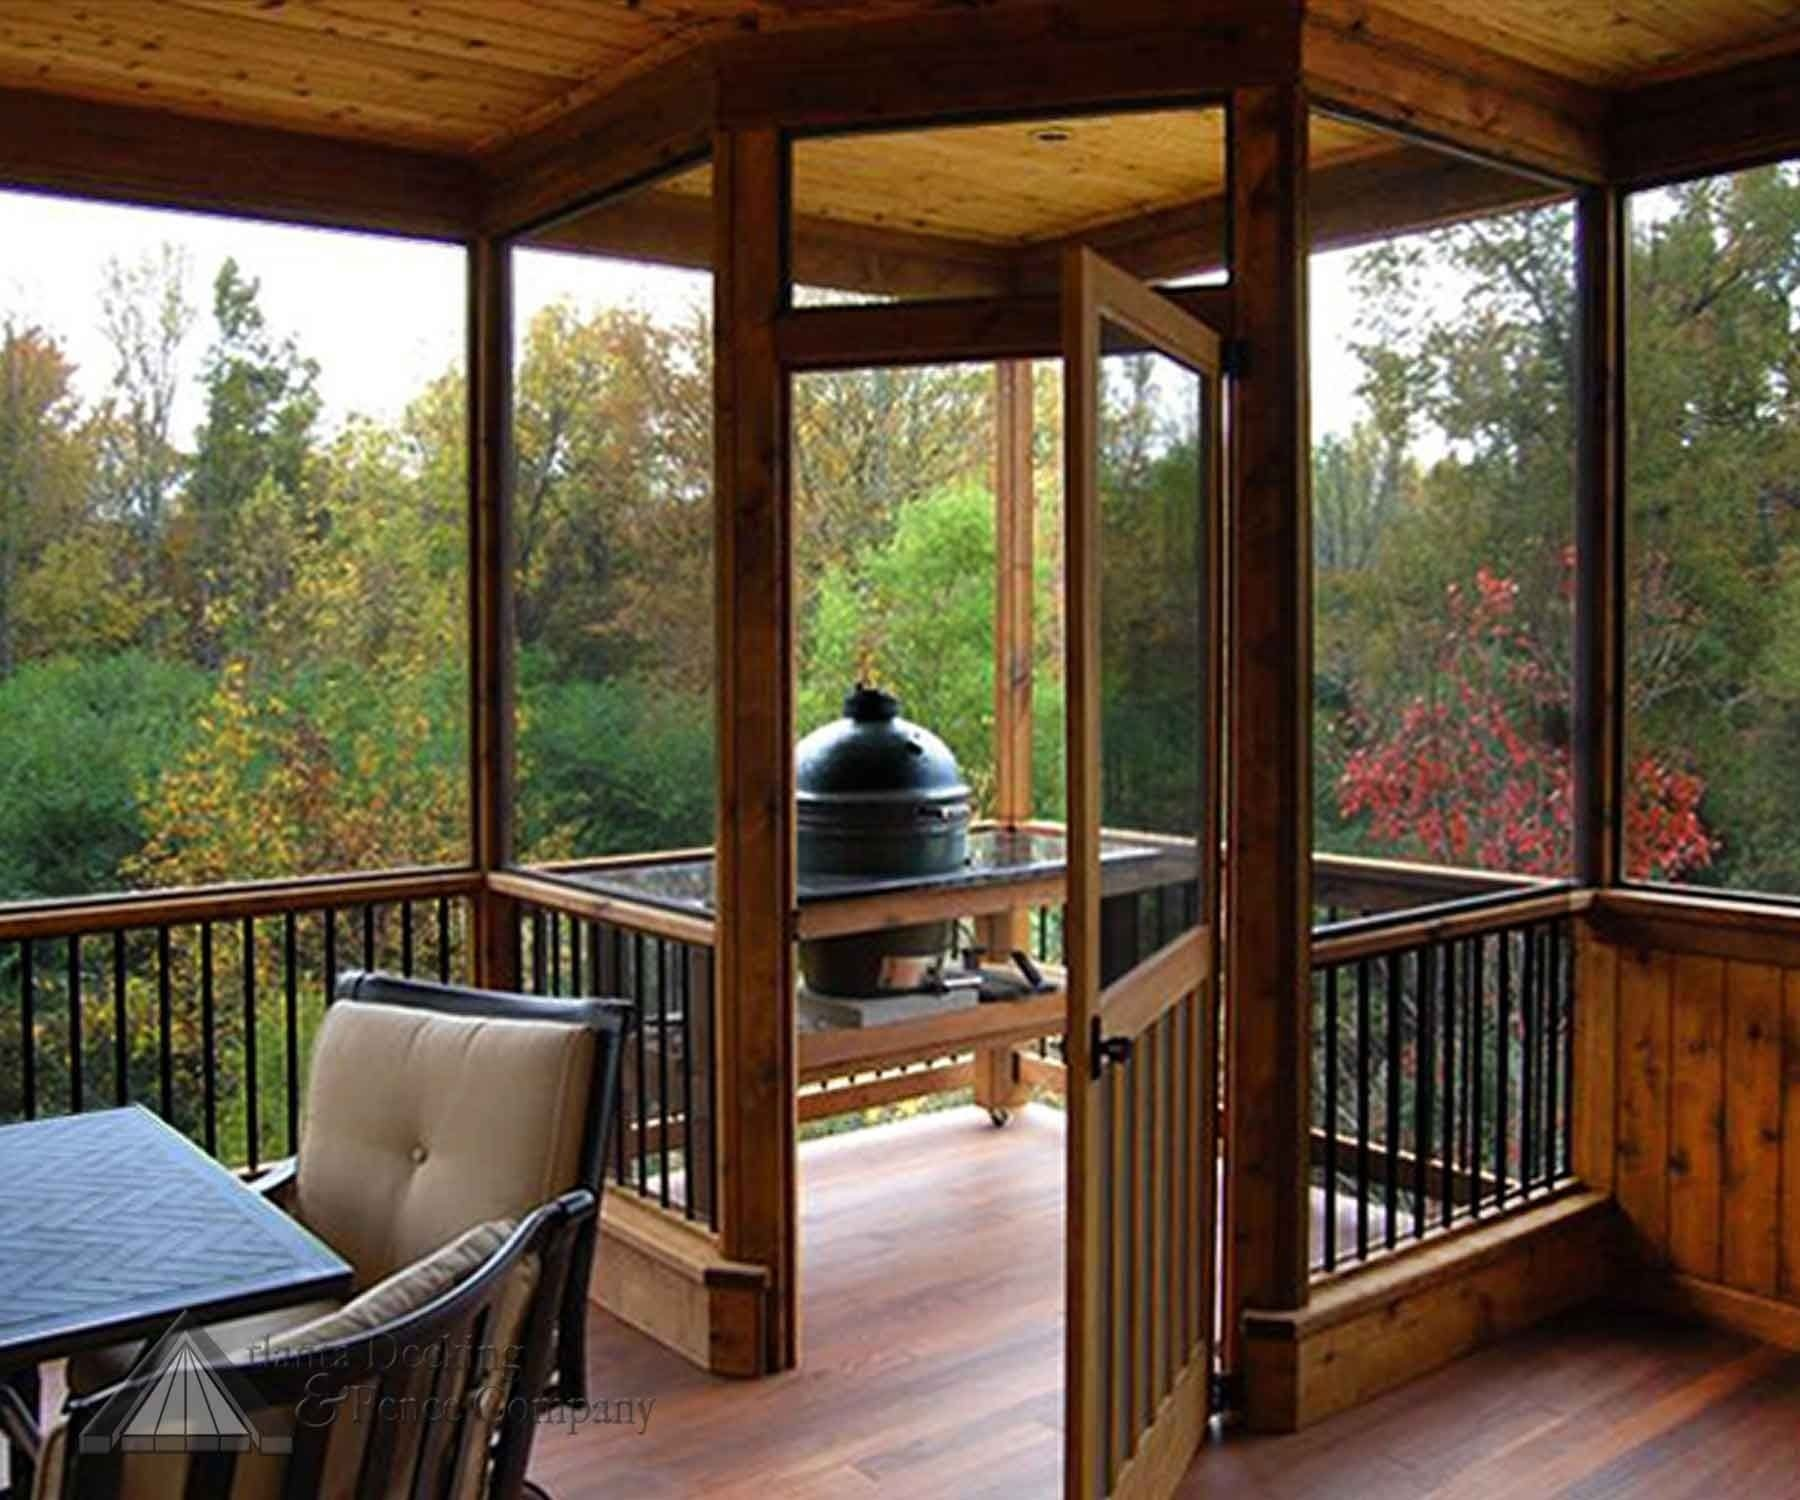 10 Fantastic Screened In Back Porch Ideas screened in porch ideas sunrooms porches screened porches 2021